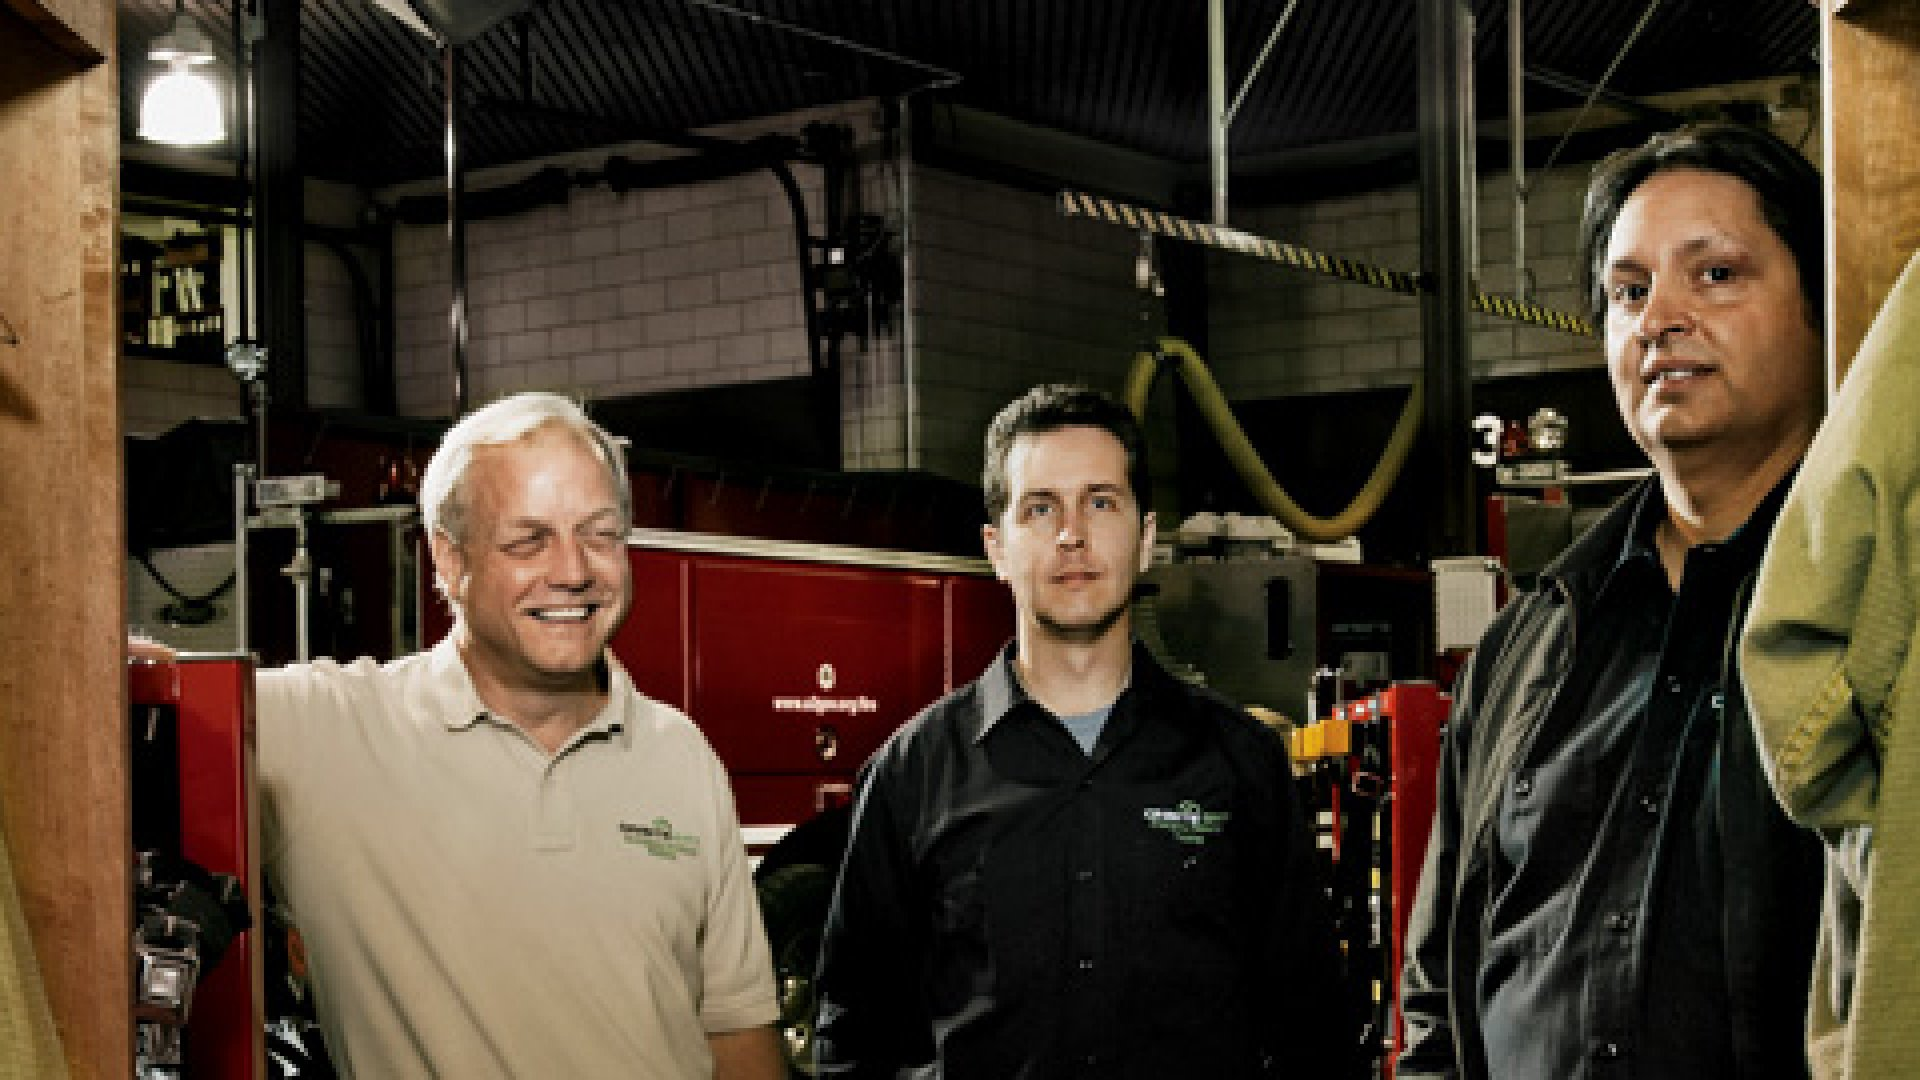 <strong>SAFETY FIRST</strong> John Ellis (left), Dennis Carmichael, and Tony Mazzola at an Ann Arbor, Michigan, firehouse that uses their OnSite ERT system.